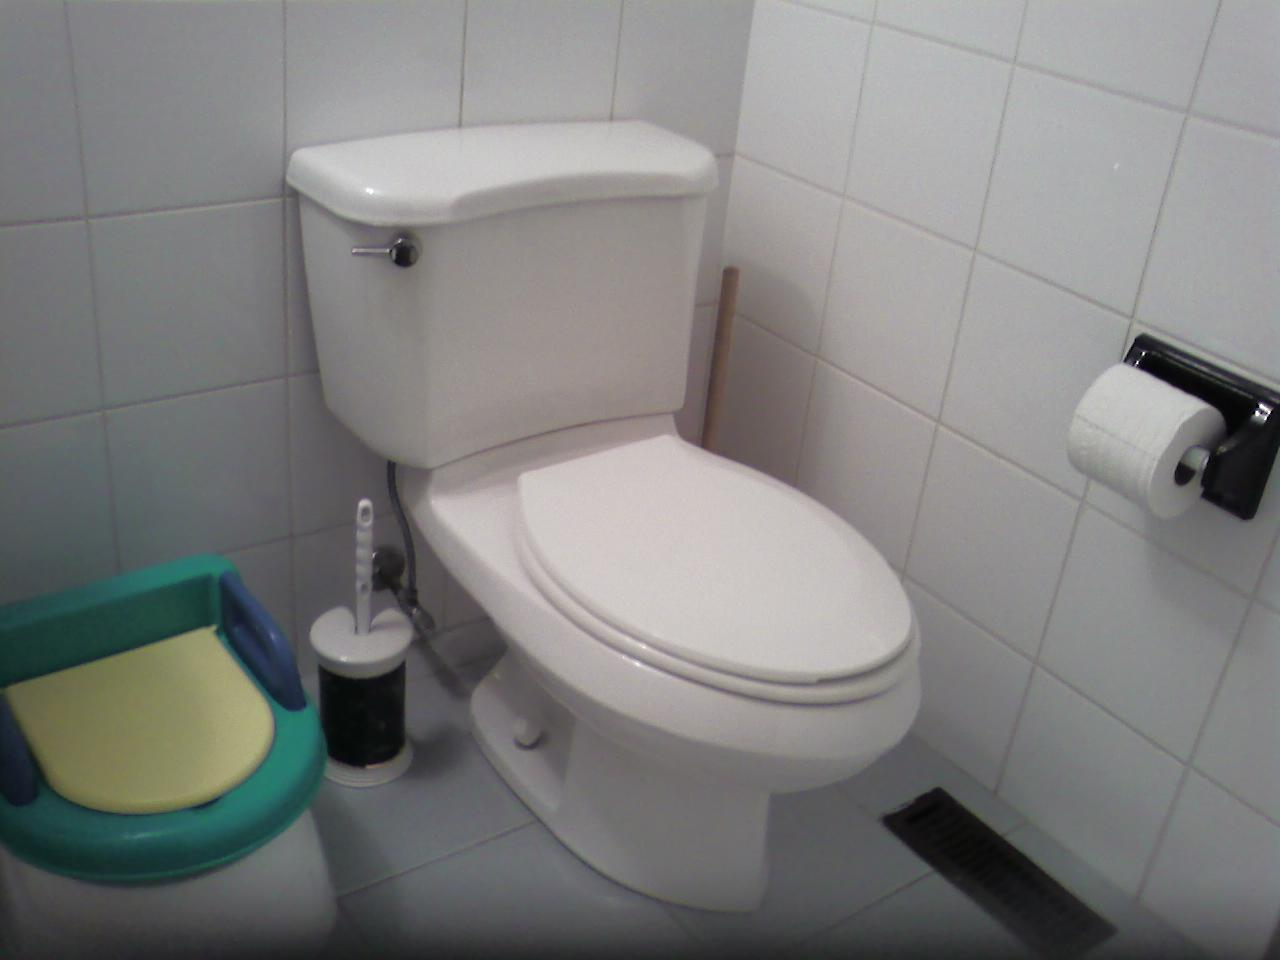 slow flushing toilet annoyances-bad-toilet.jpg